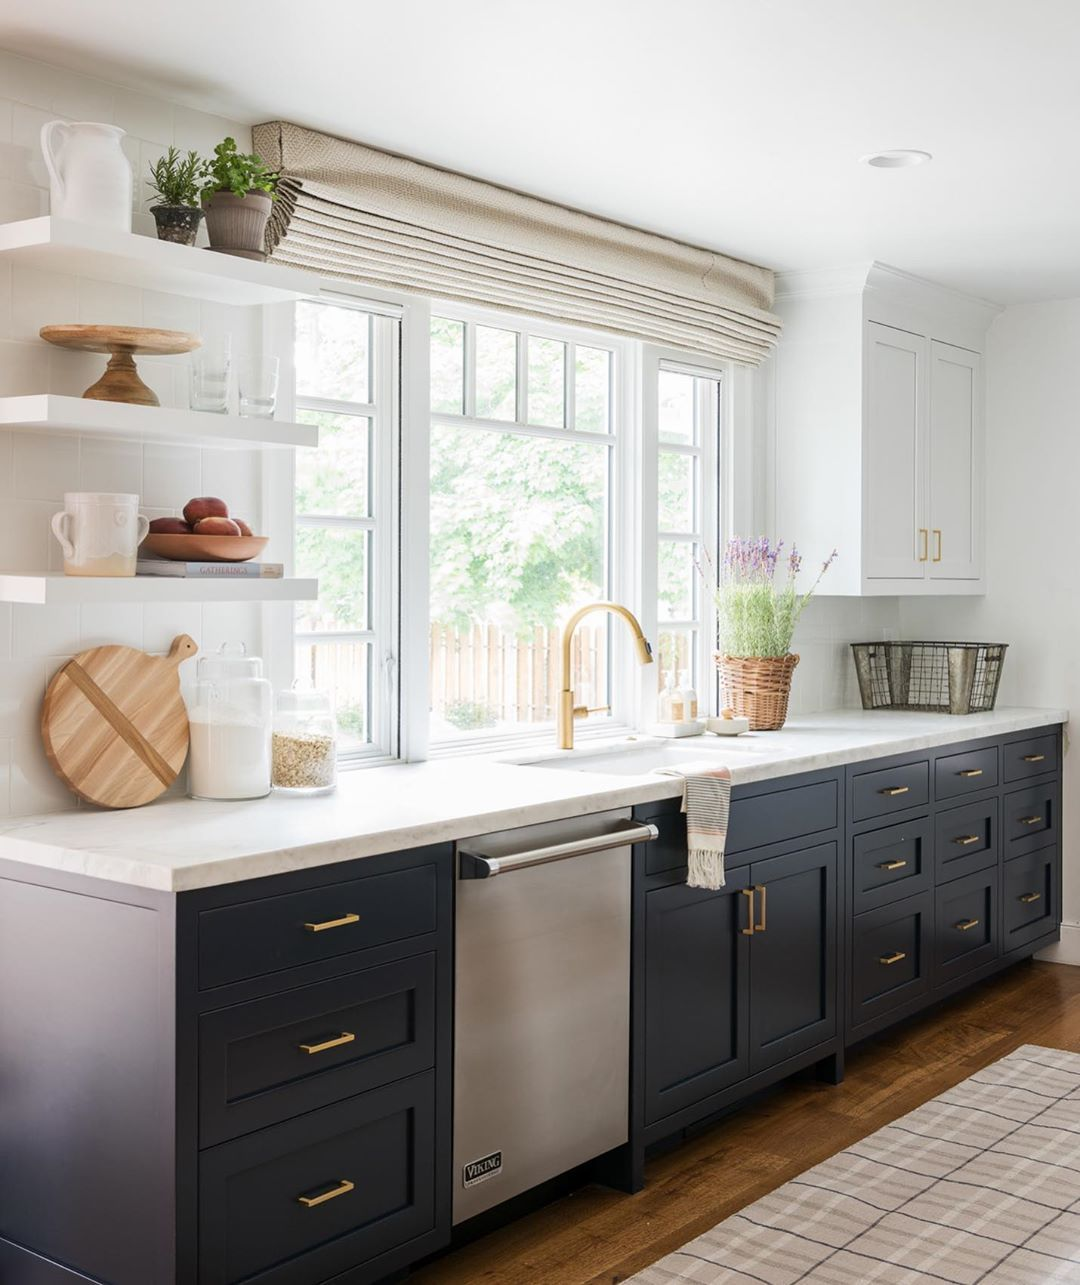 Mcgee Co On Instagram The Paint Color Is Hale Navy And Everything Here Ships Free In 2020 Hale Navy Farmhouse Kitchen Inspiration Kitchen Design